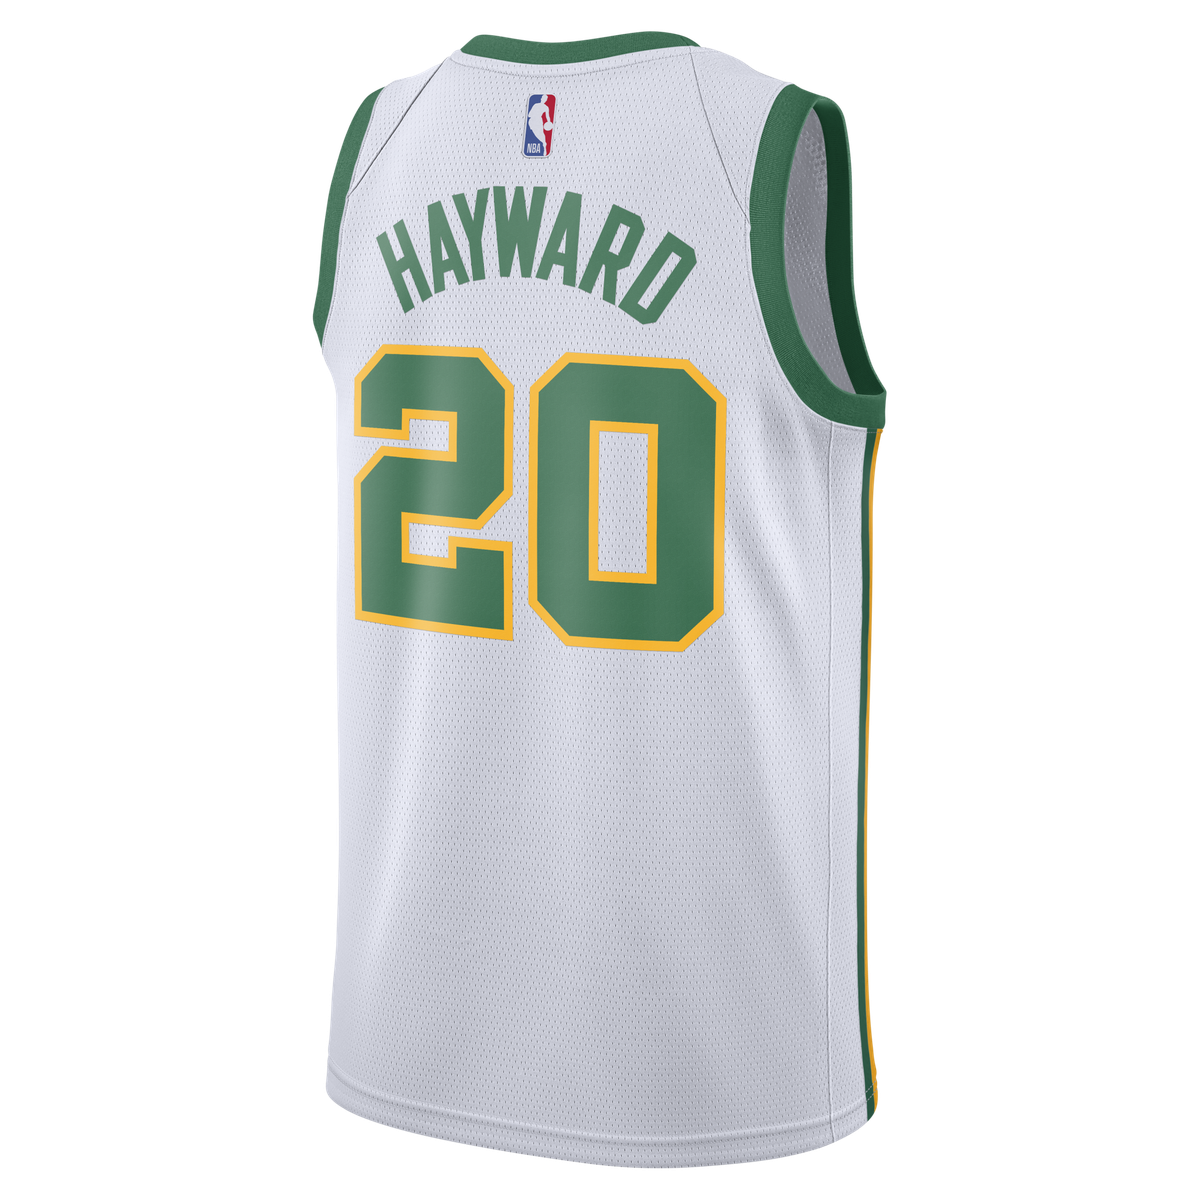 size 40 4ba07 3a649 NBA City Edition: The jerseys, T-shirts and merch you can ...